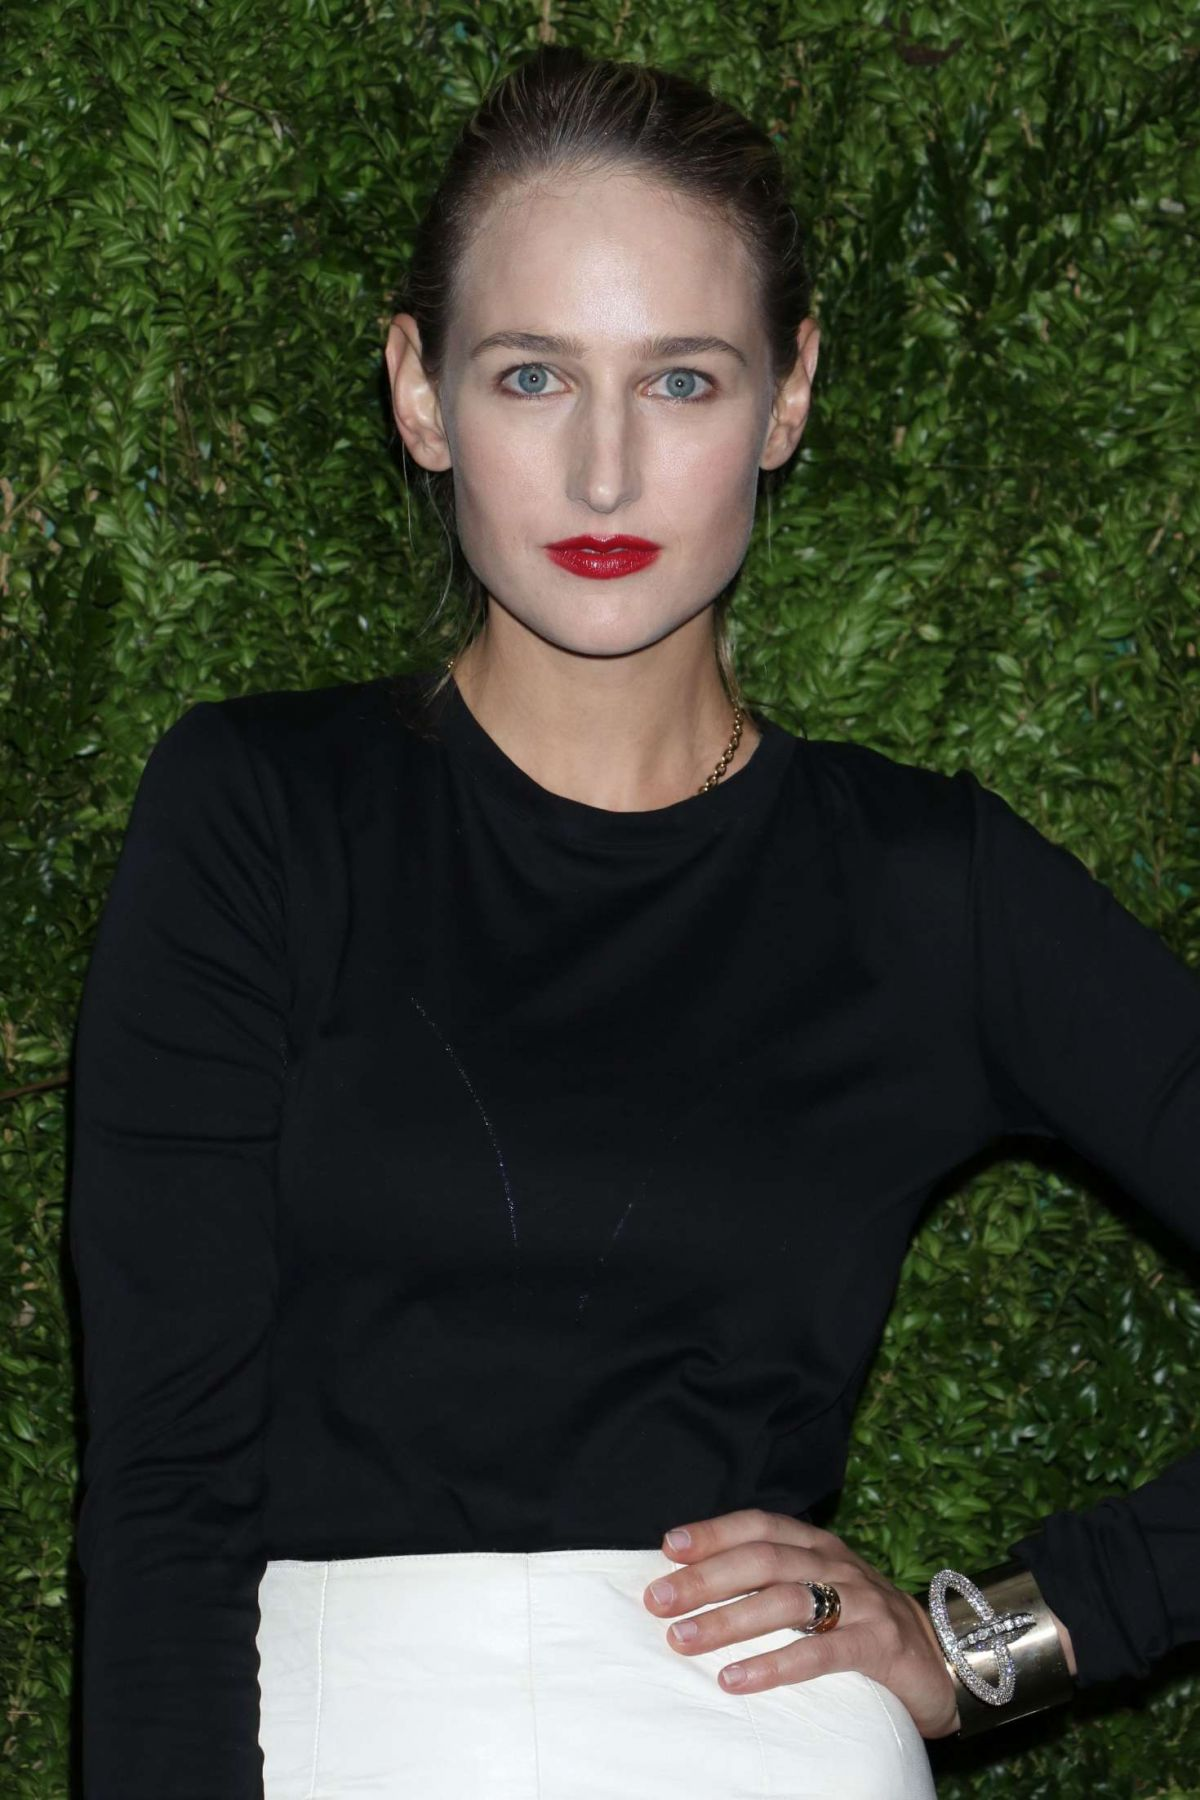 LEELEE SOBIESKI at 2016 Museum of Modern Art Film Benefit 'A Tribute to Tom Hanks' in New York 11/15/2016